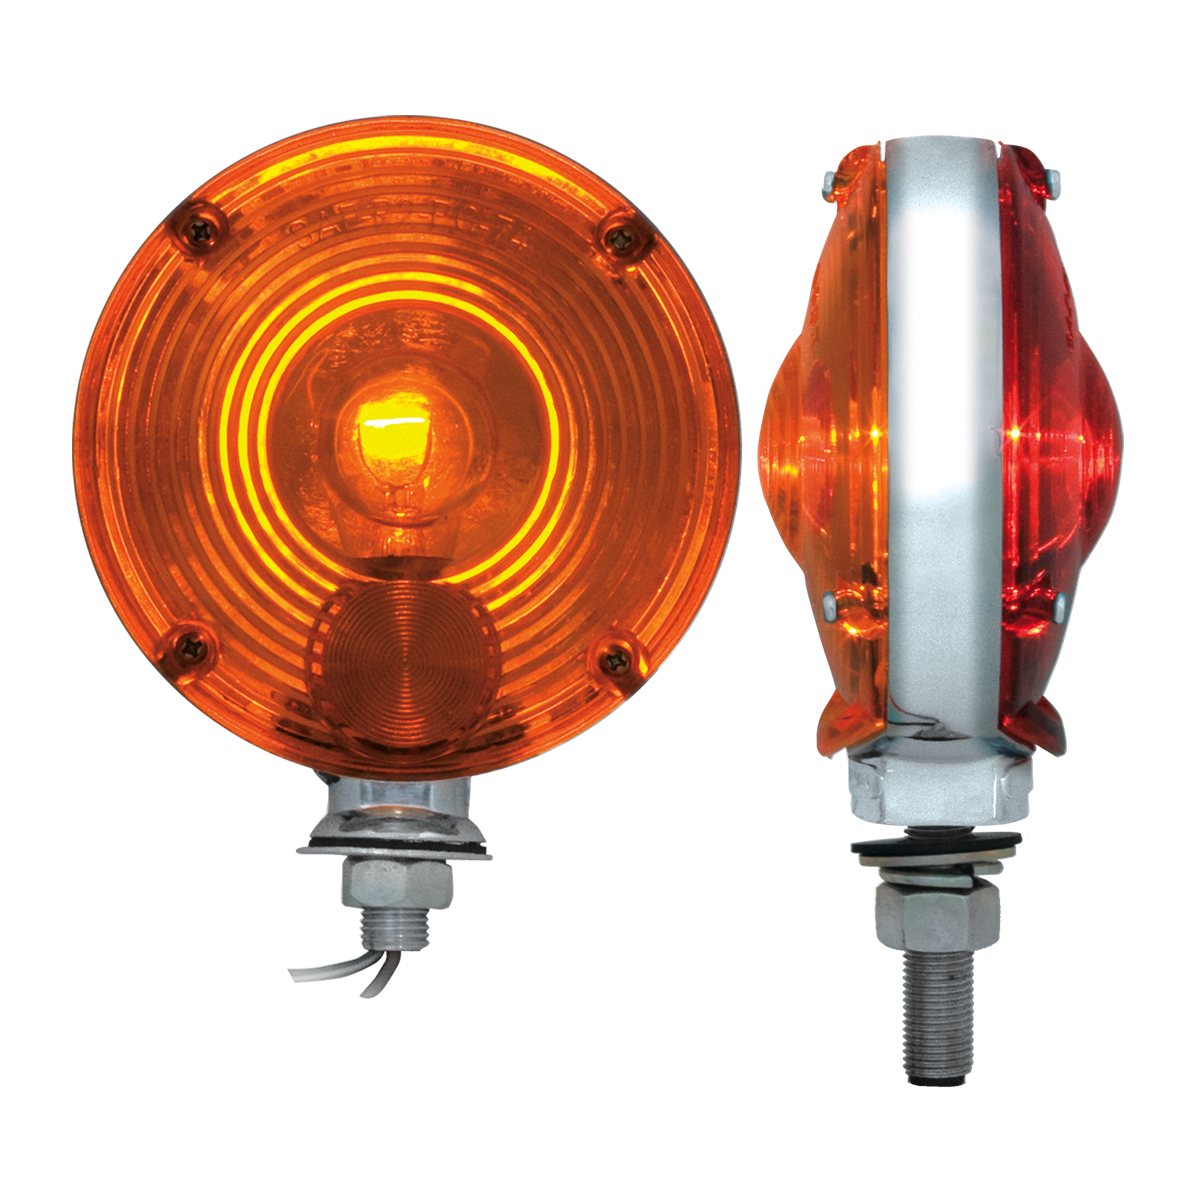 "#80305 4"" Double Face Pedestal Amber/Red Light - Profile View"